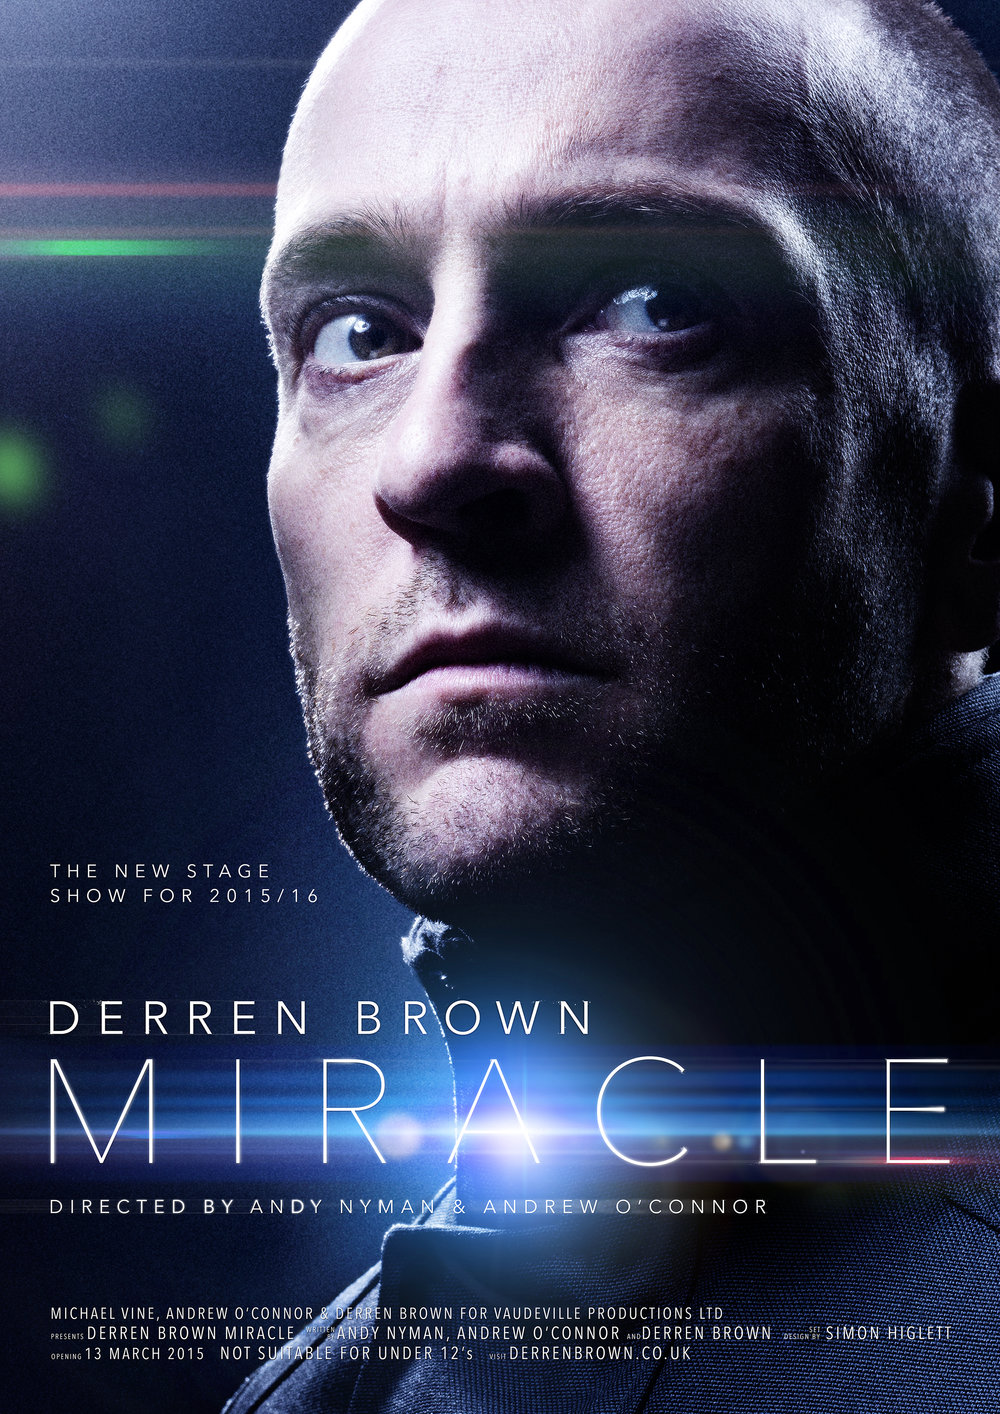 DerrenBrown-Miracle-2015.jpg